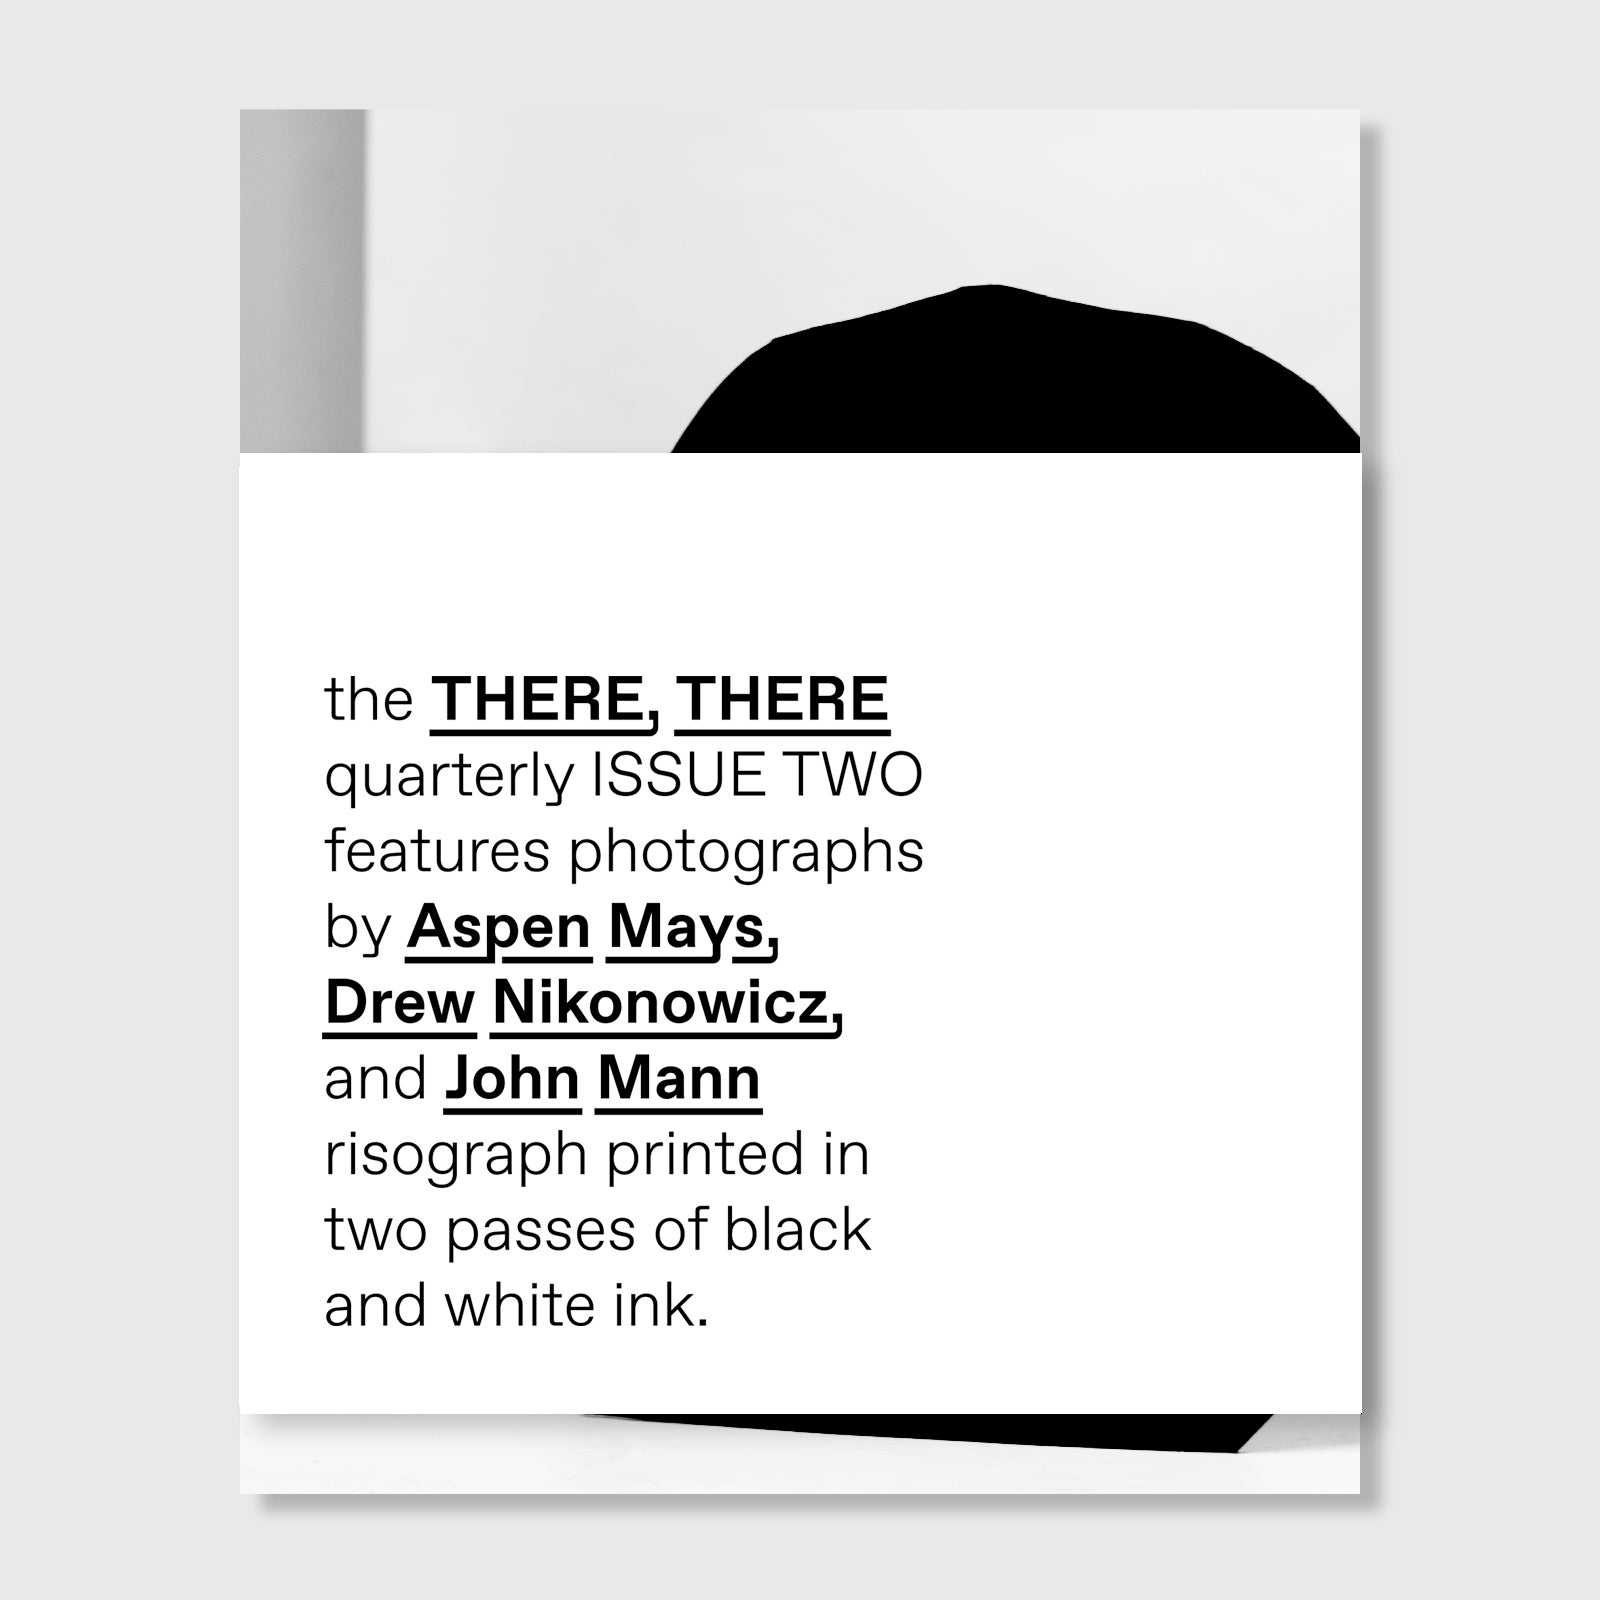 Image of ISSUE TWO // the THERE, THERE quarterly